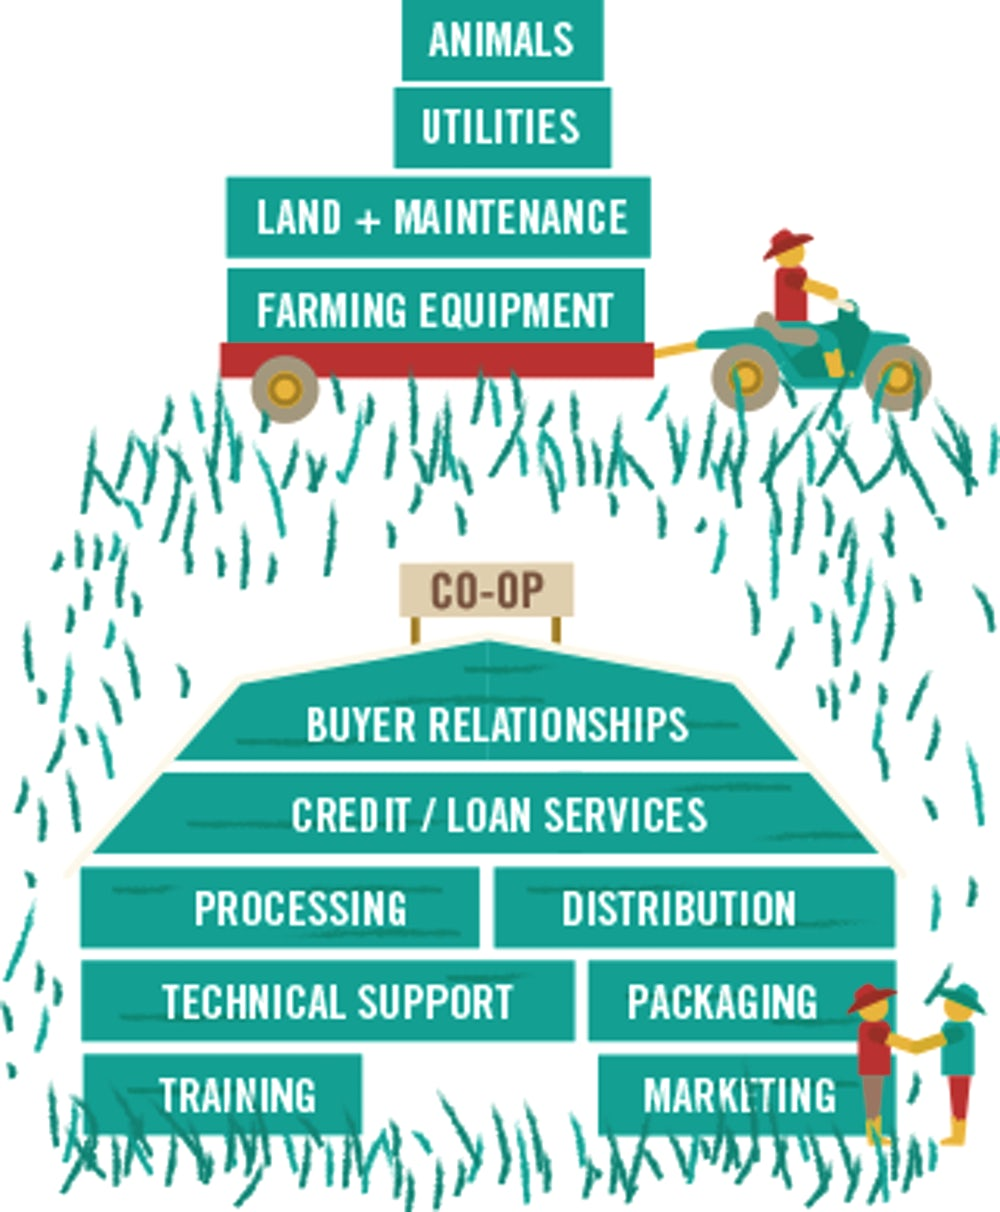 Infographic that shows what the farmer is responsible for in a co-op, including animals, utilities, land and maintenance, and farming equipment, while the co-op helps with the rest.